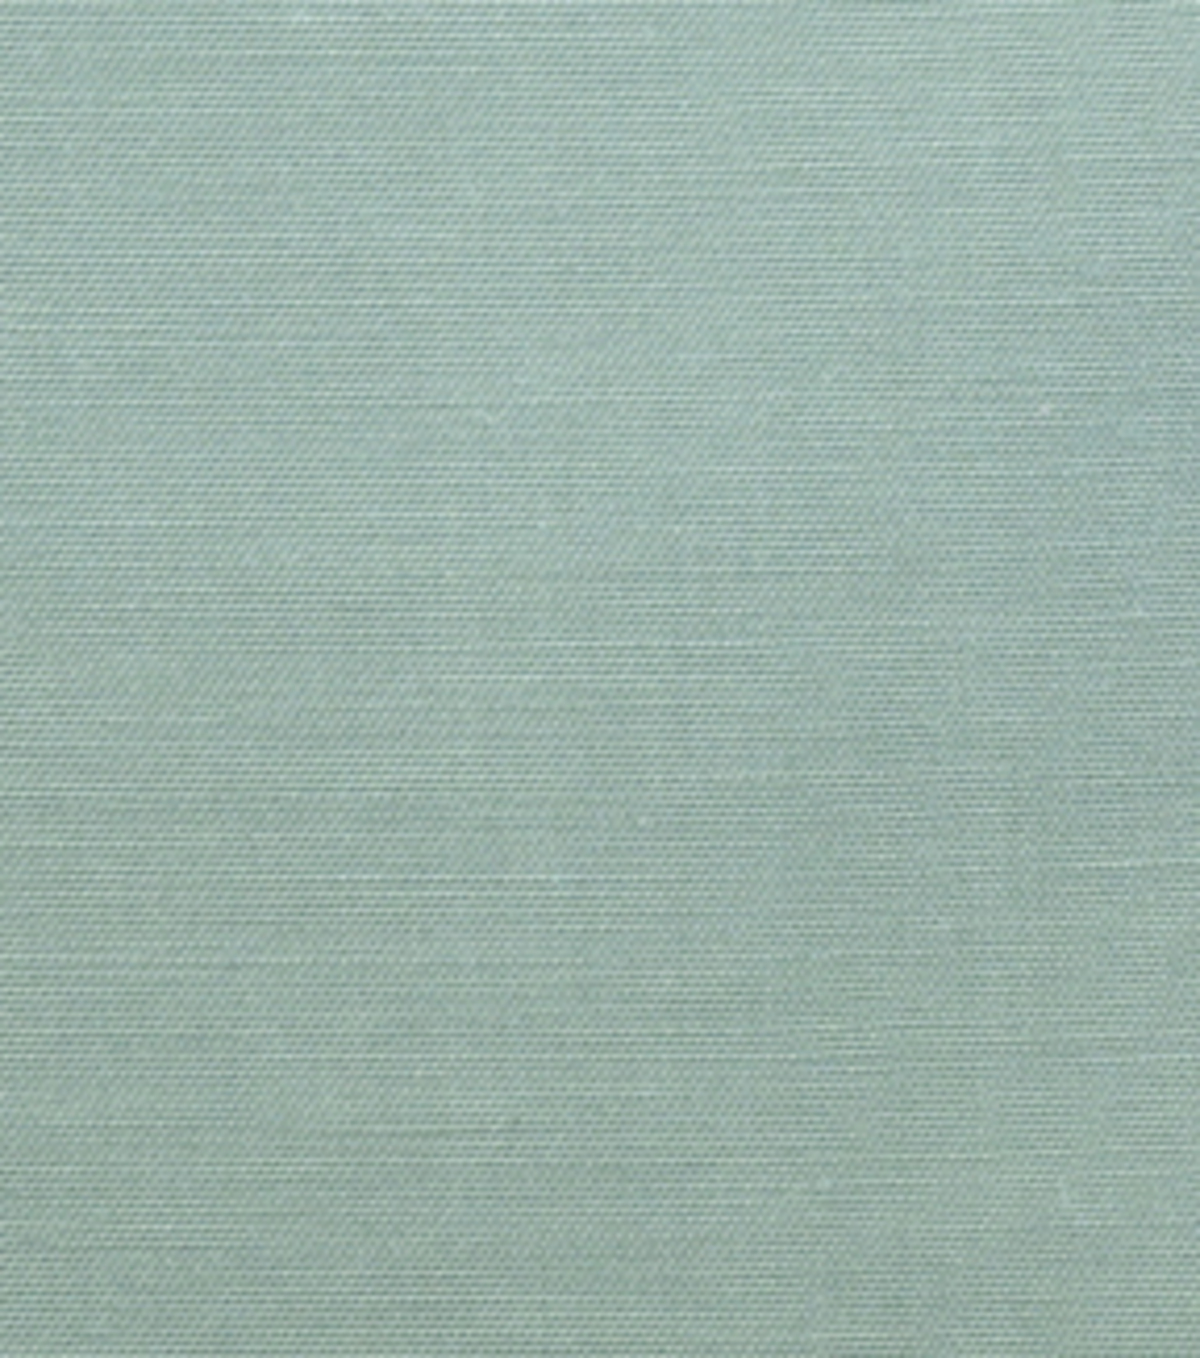 Home Decor 8\u0022x8\u0022 Fabric Swatch-Signature Series Sonoma Linen-Cotton Spa